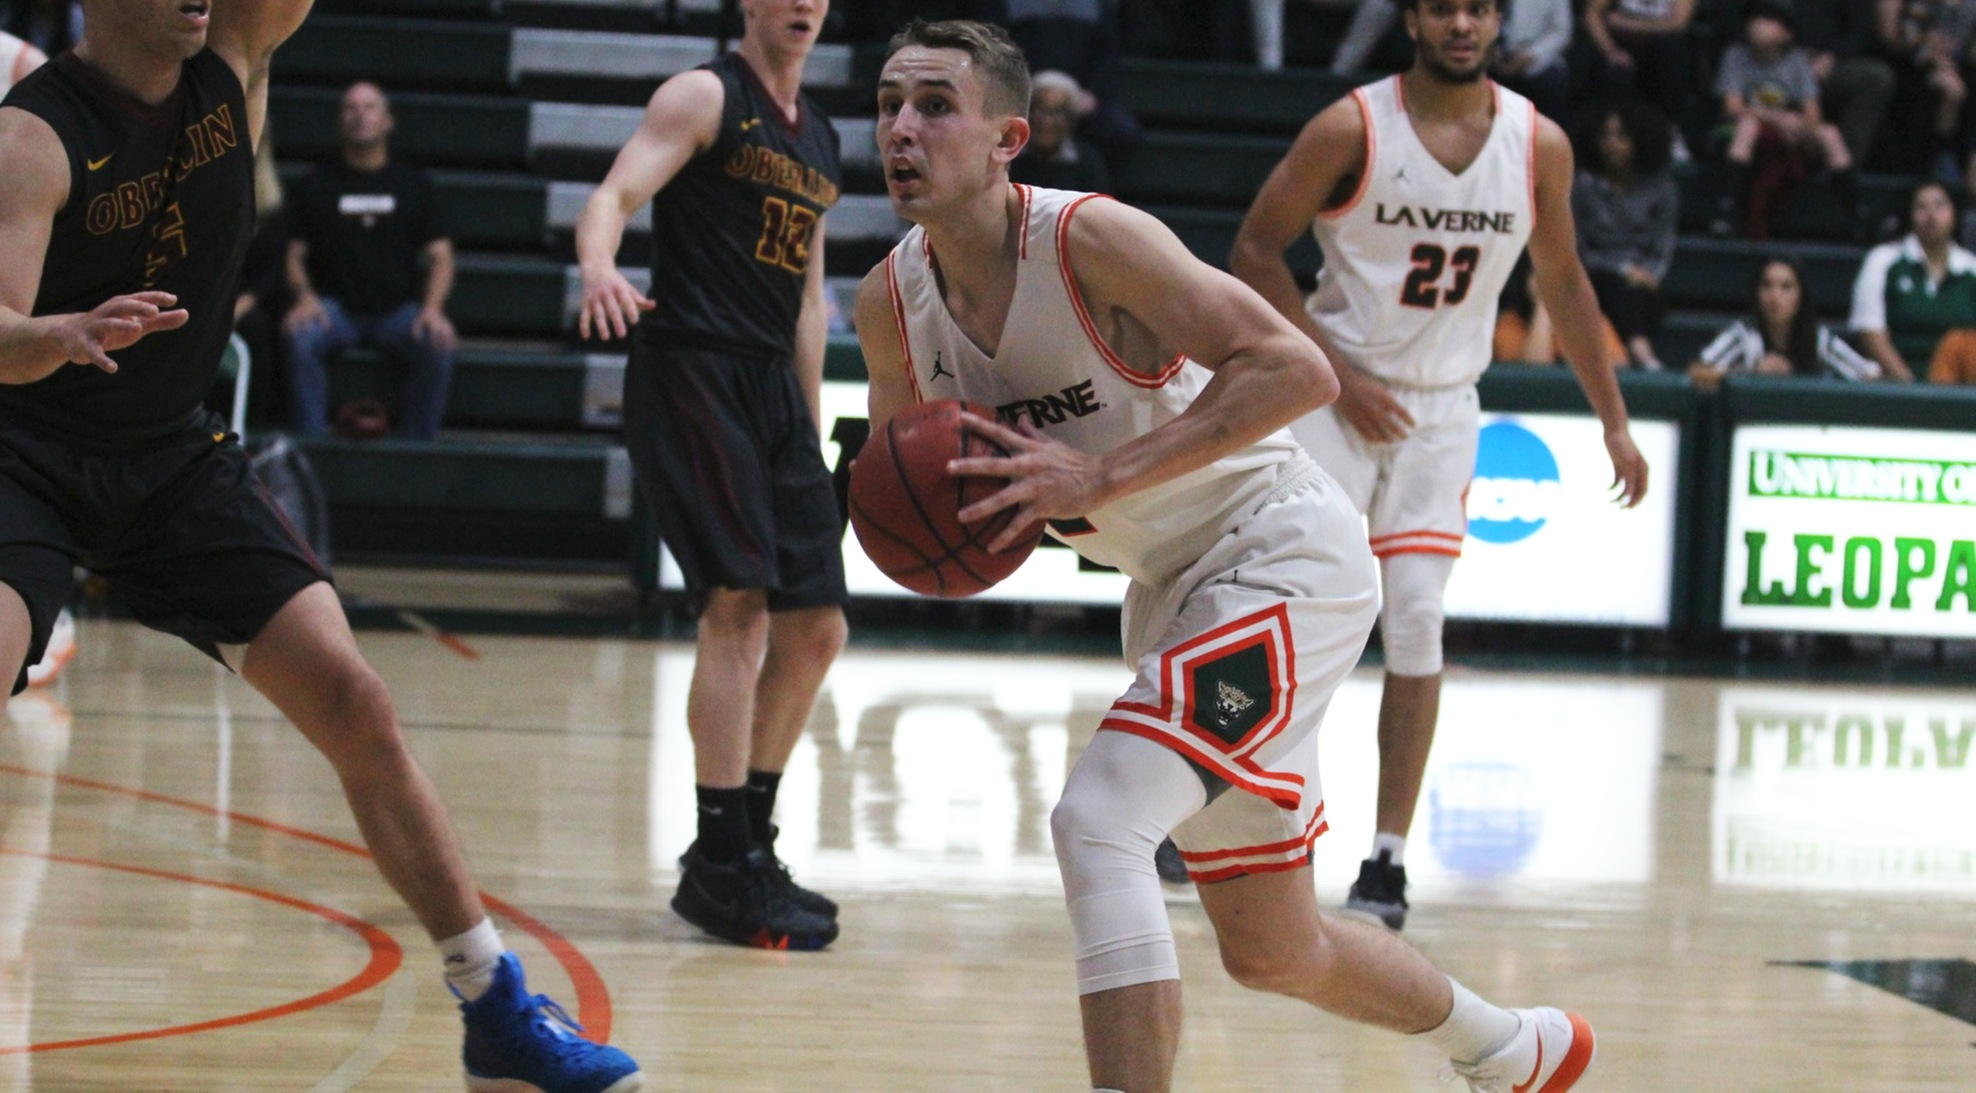 Men's Basketball gives Oxy scare